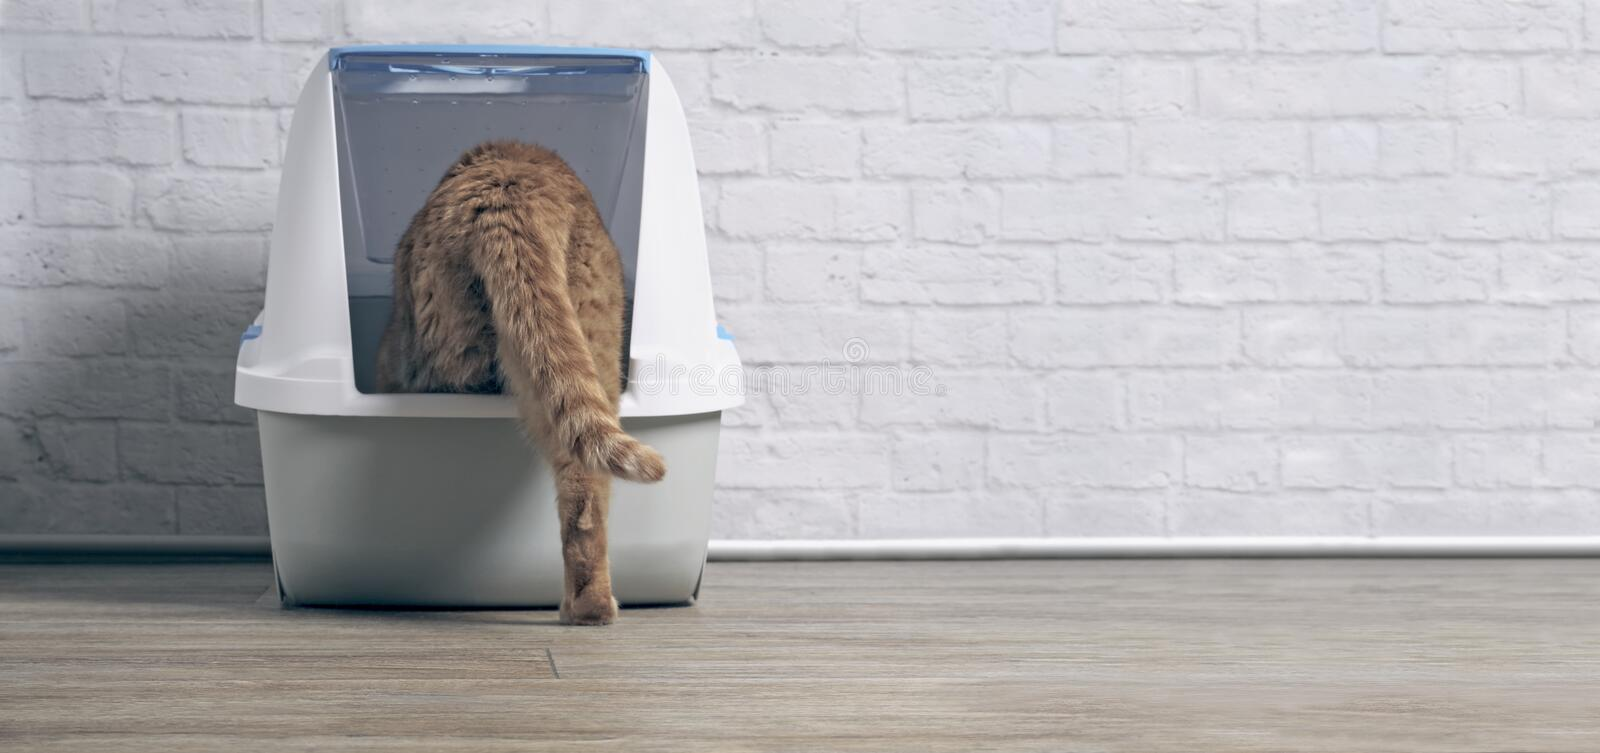 Orange tabby cat step inside a litter box. Panoramic image with copy space stock images